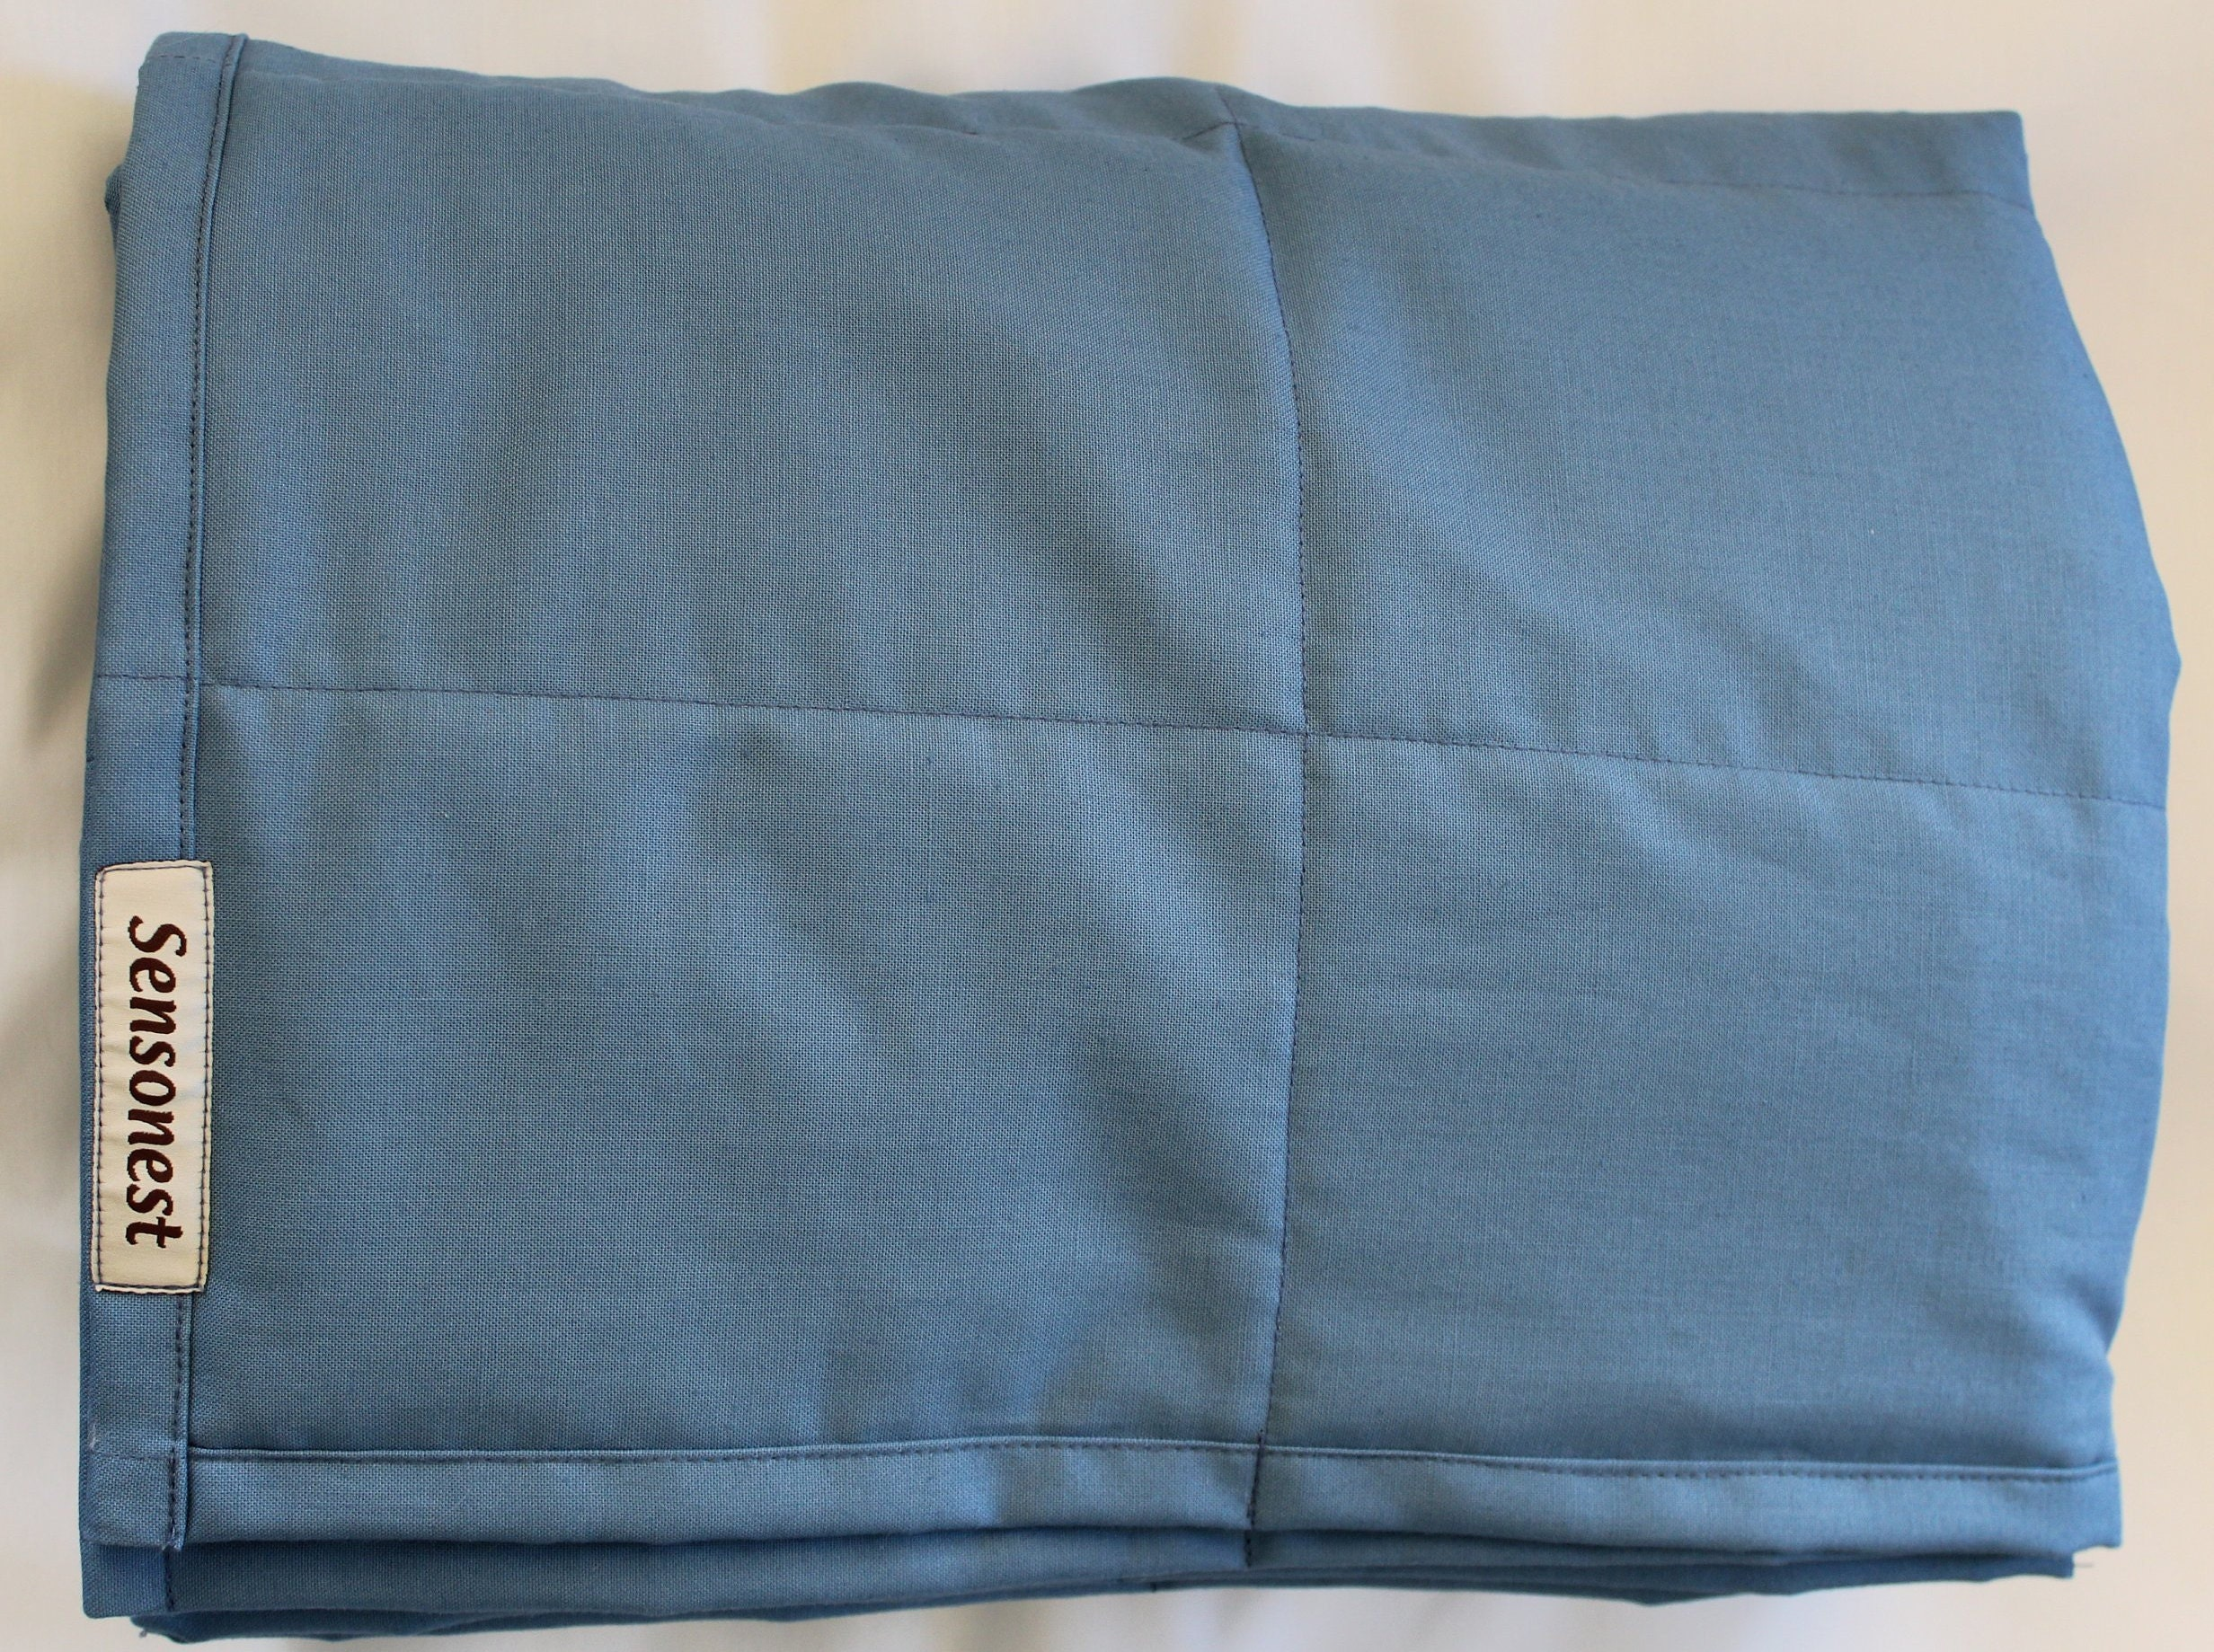 Calming blanket / heavy comforter / adult weighted blanket cotton and glass filling / autism blanket child / twin weighted blanket / blue